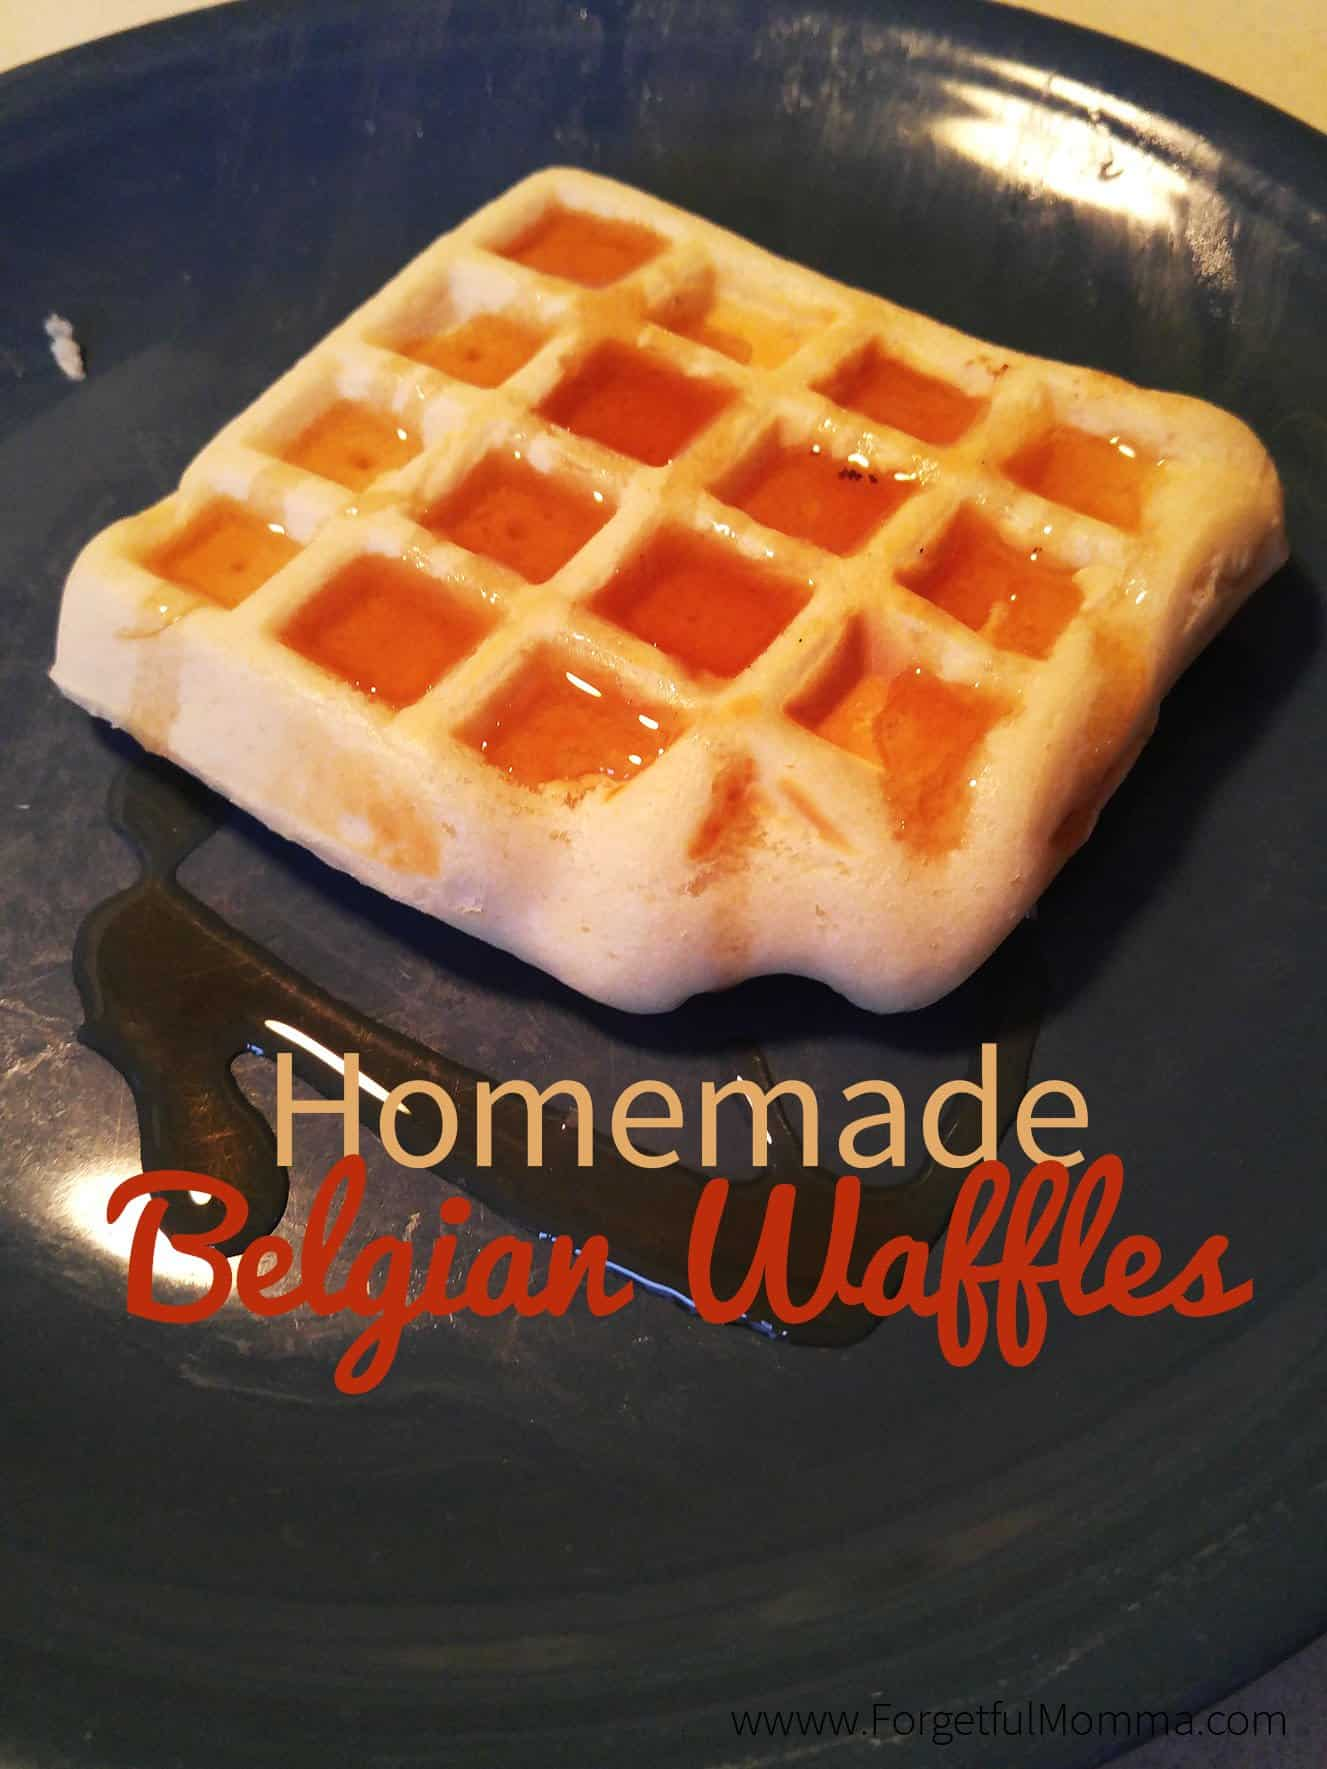 Homemade Belgian Waffles - Forgetful Momma